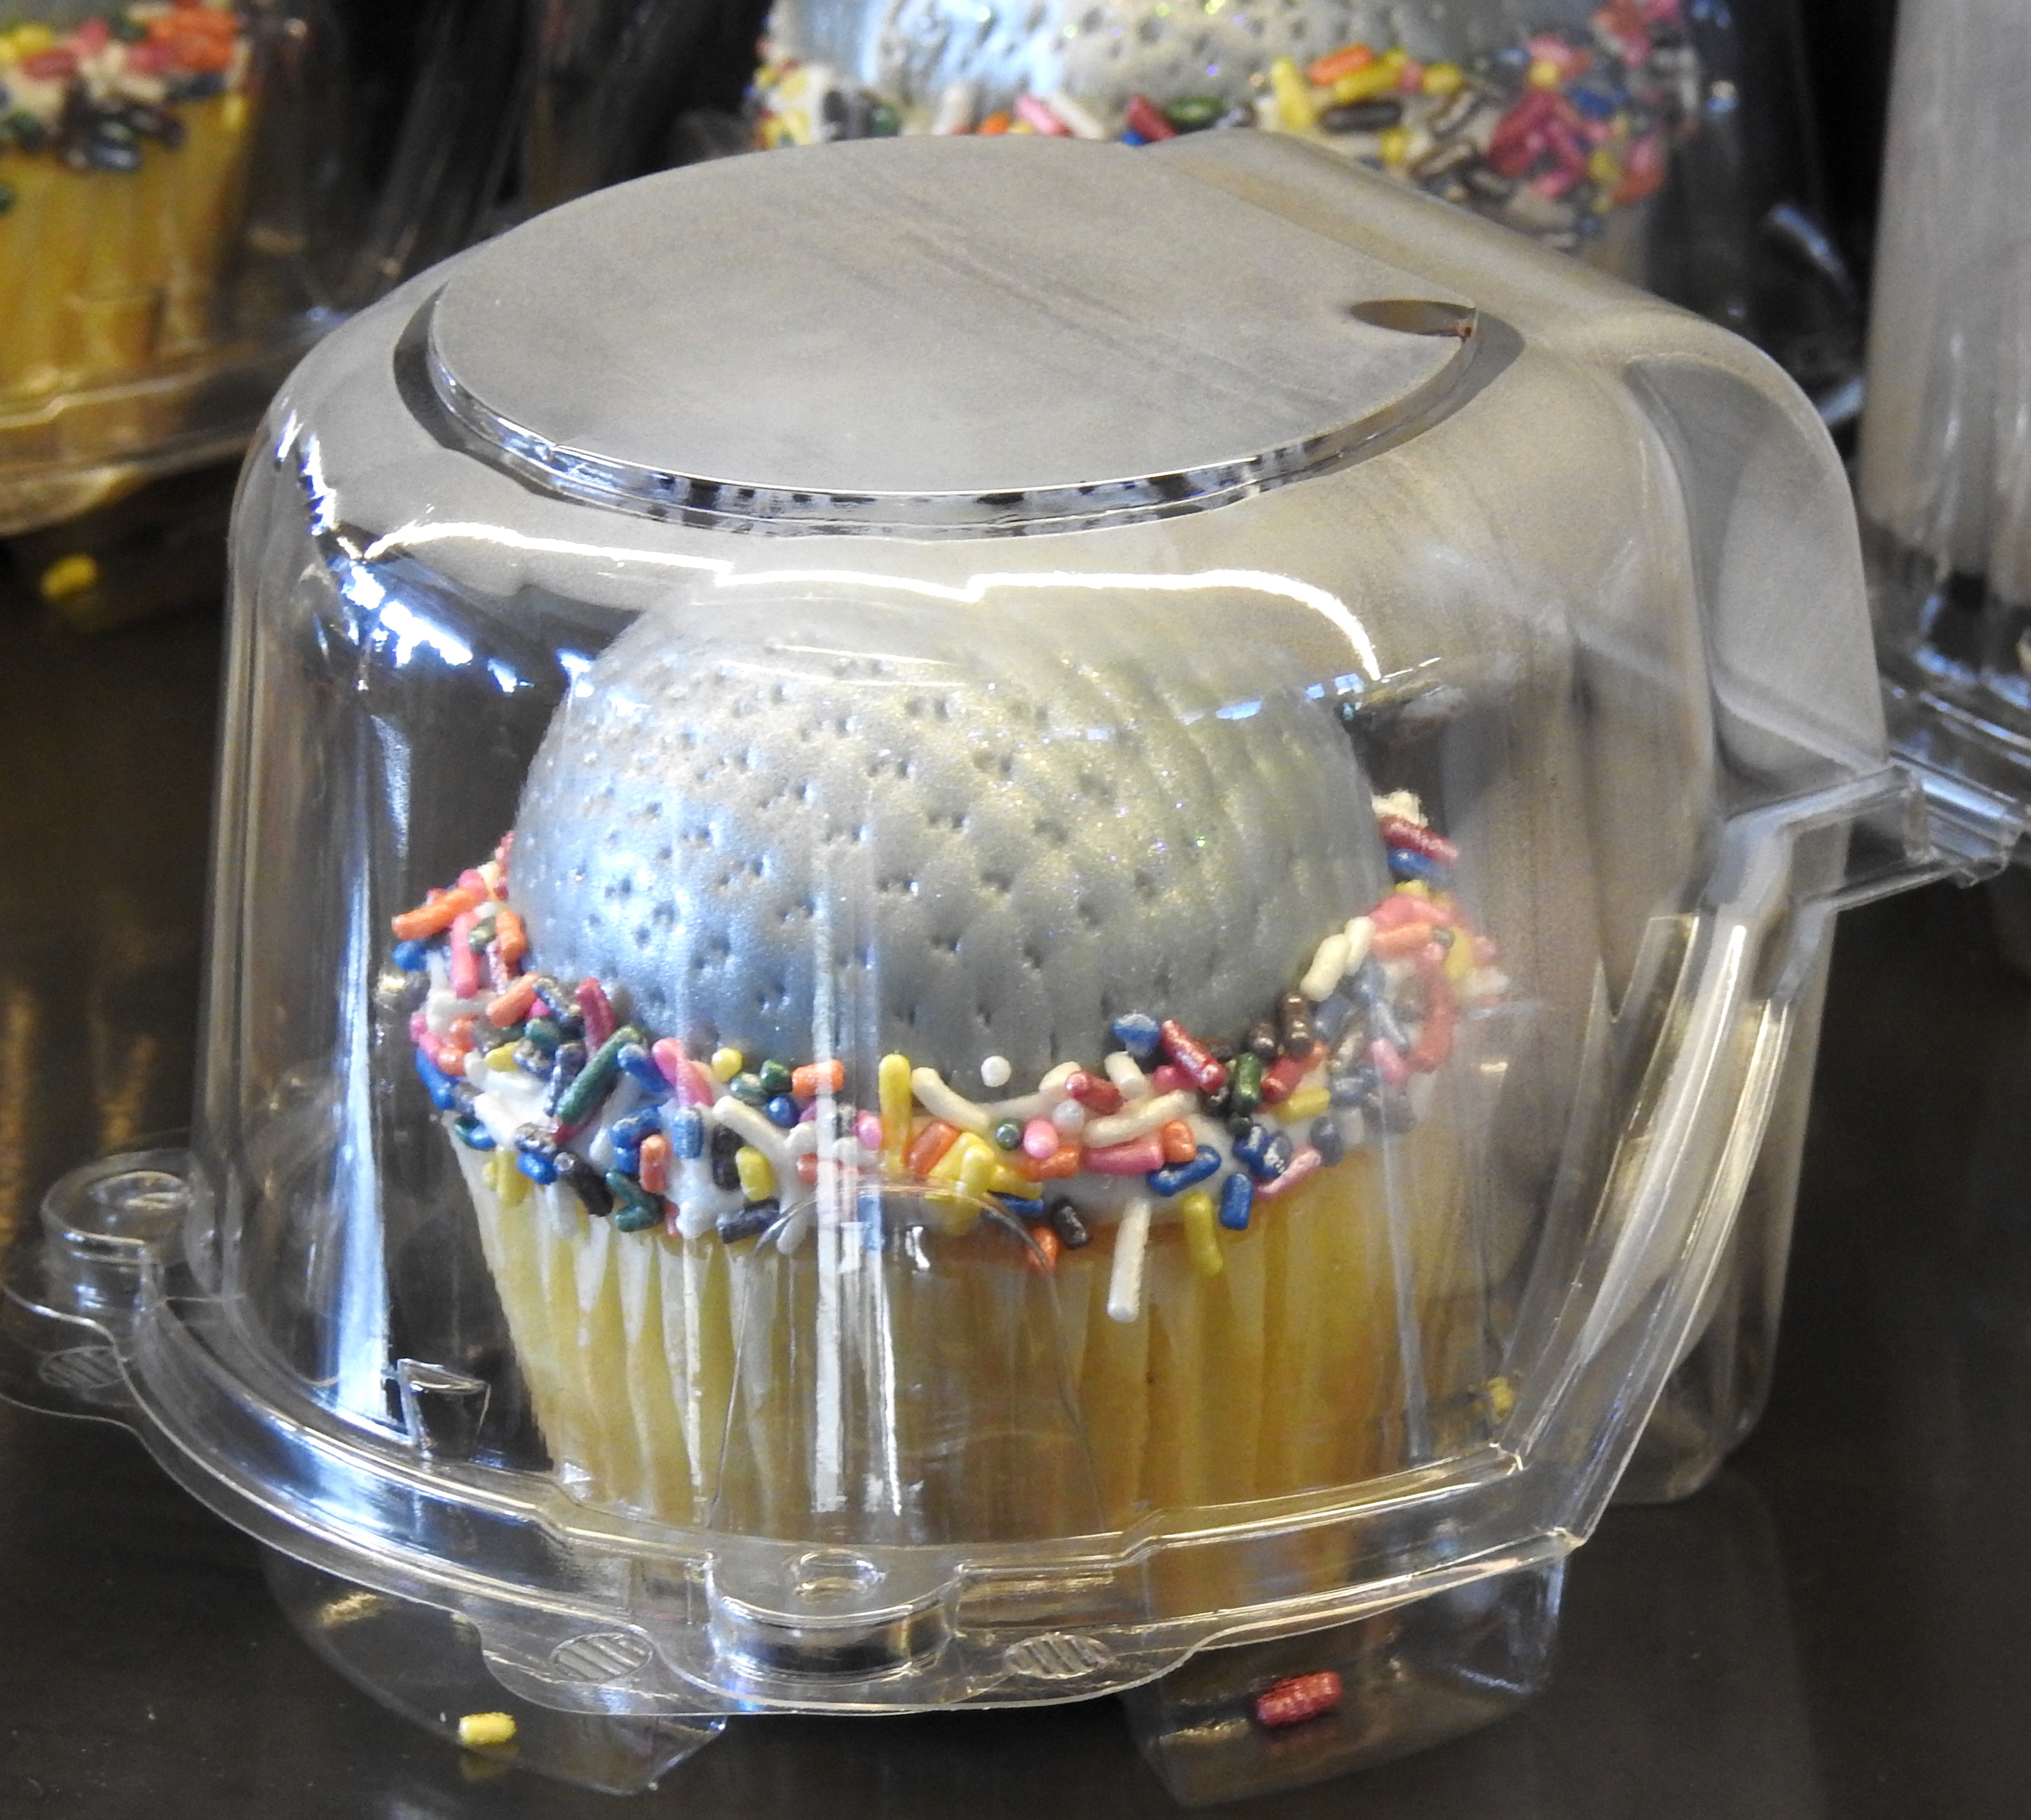 A cupcake at Starbucks in the shape of the golf ball, the Epcot symbol.